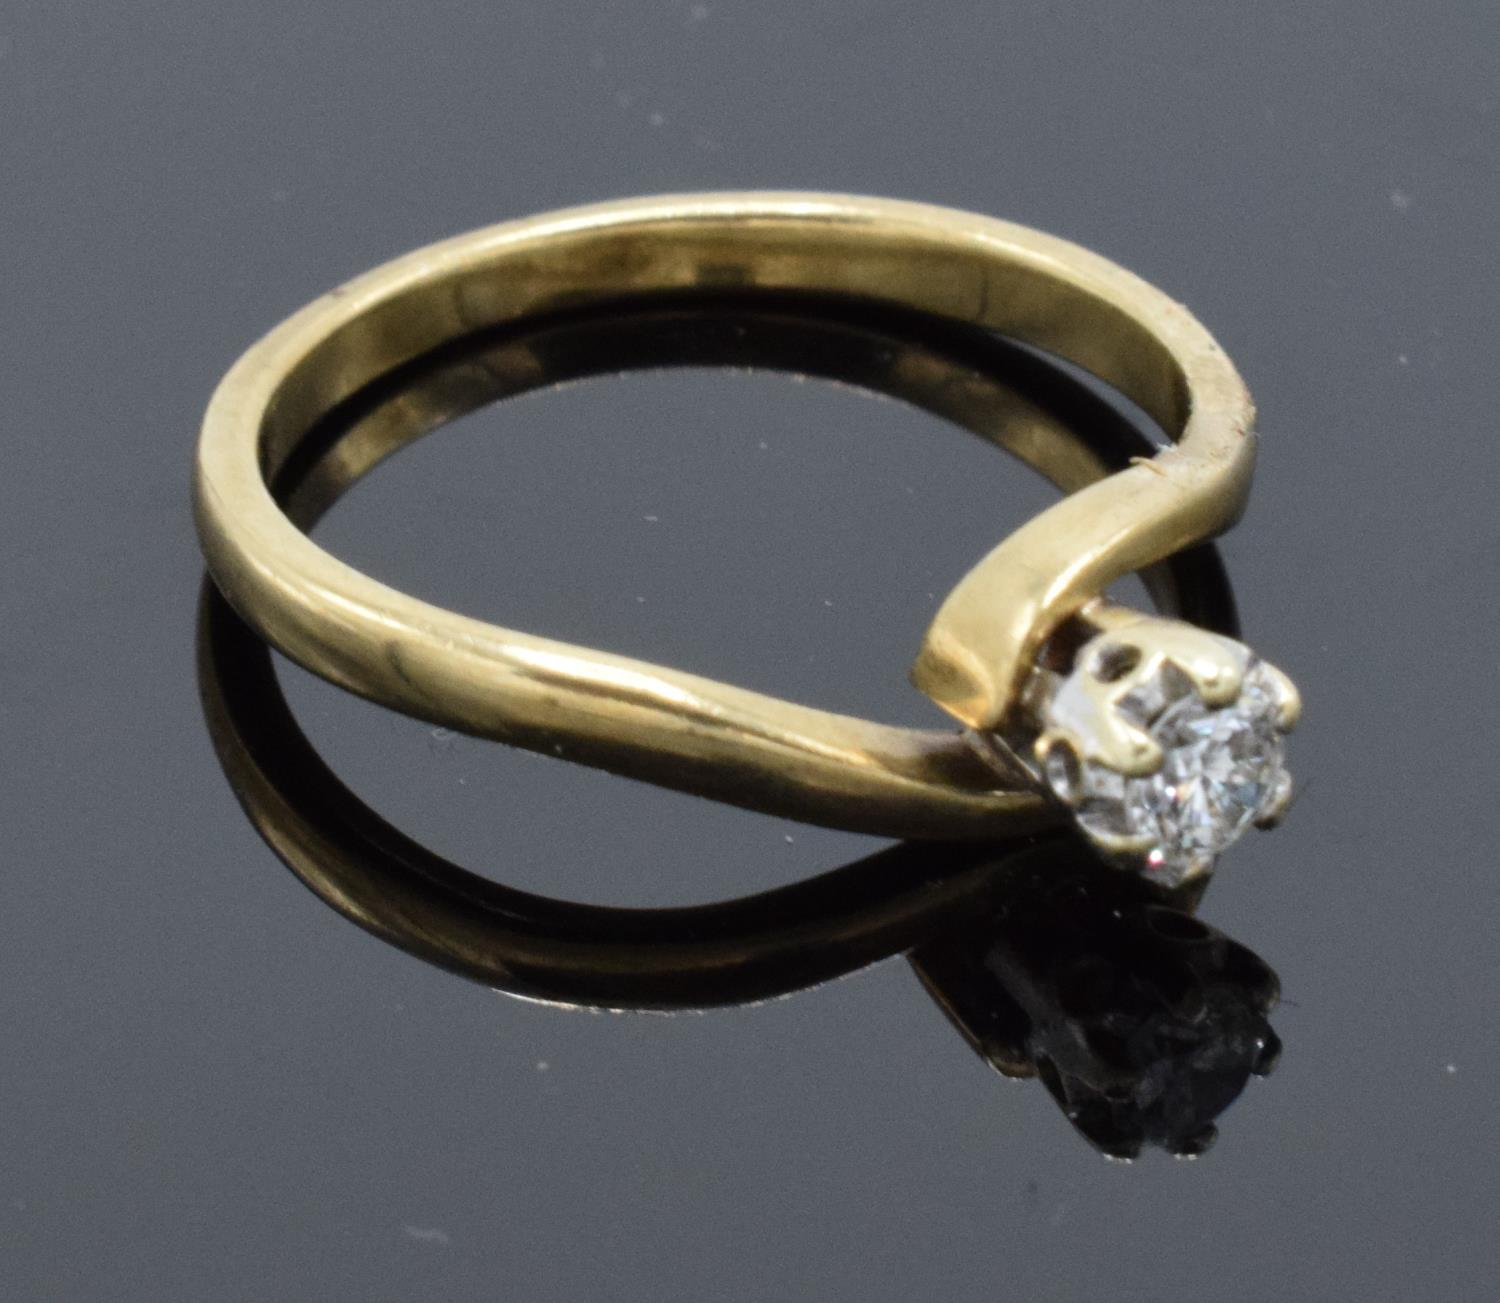 9ct gold ladies solitaire diamond ring. UK size L/M. 1.8 grams gross weight. Full hallmarks.